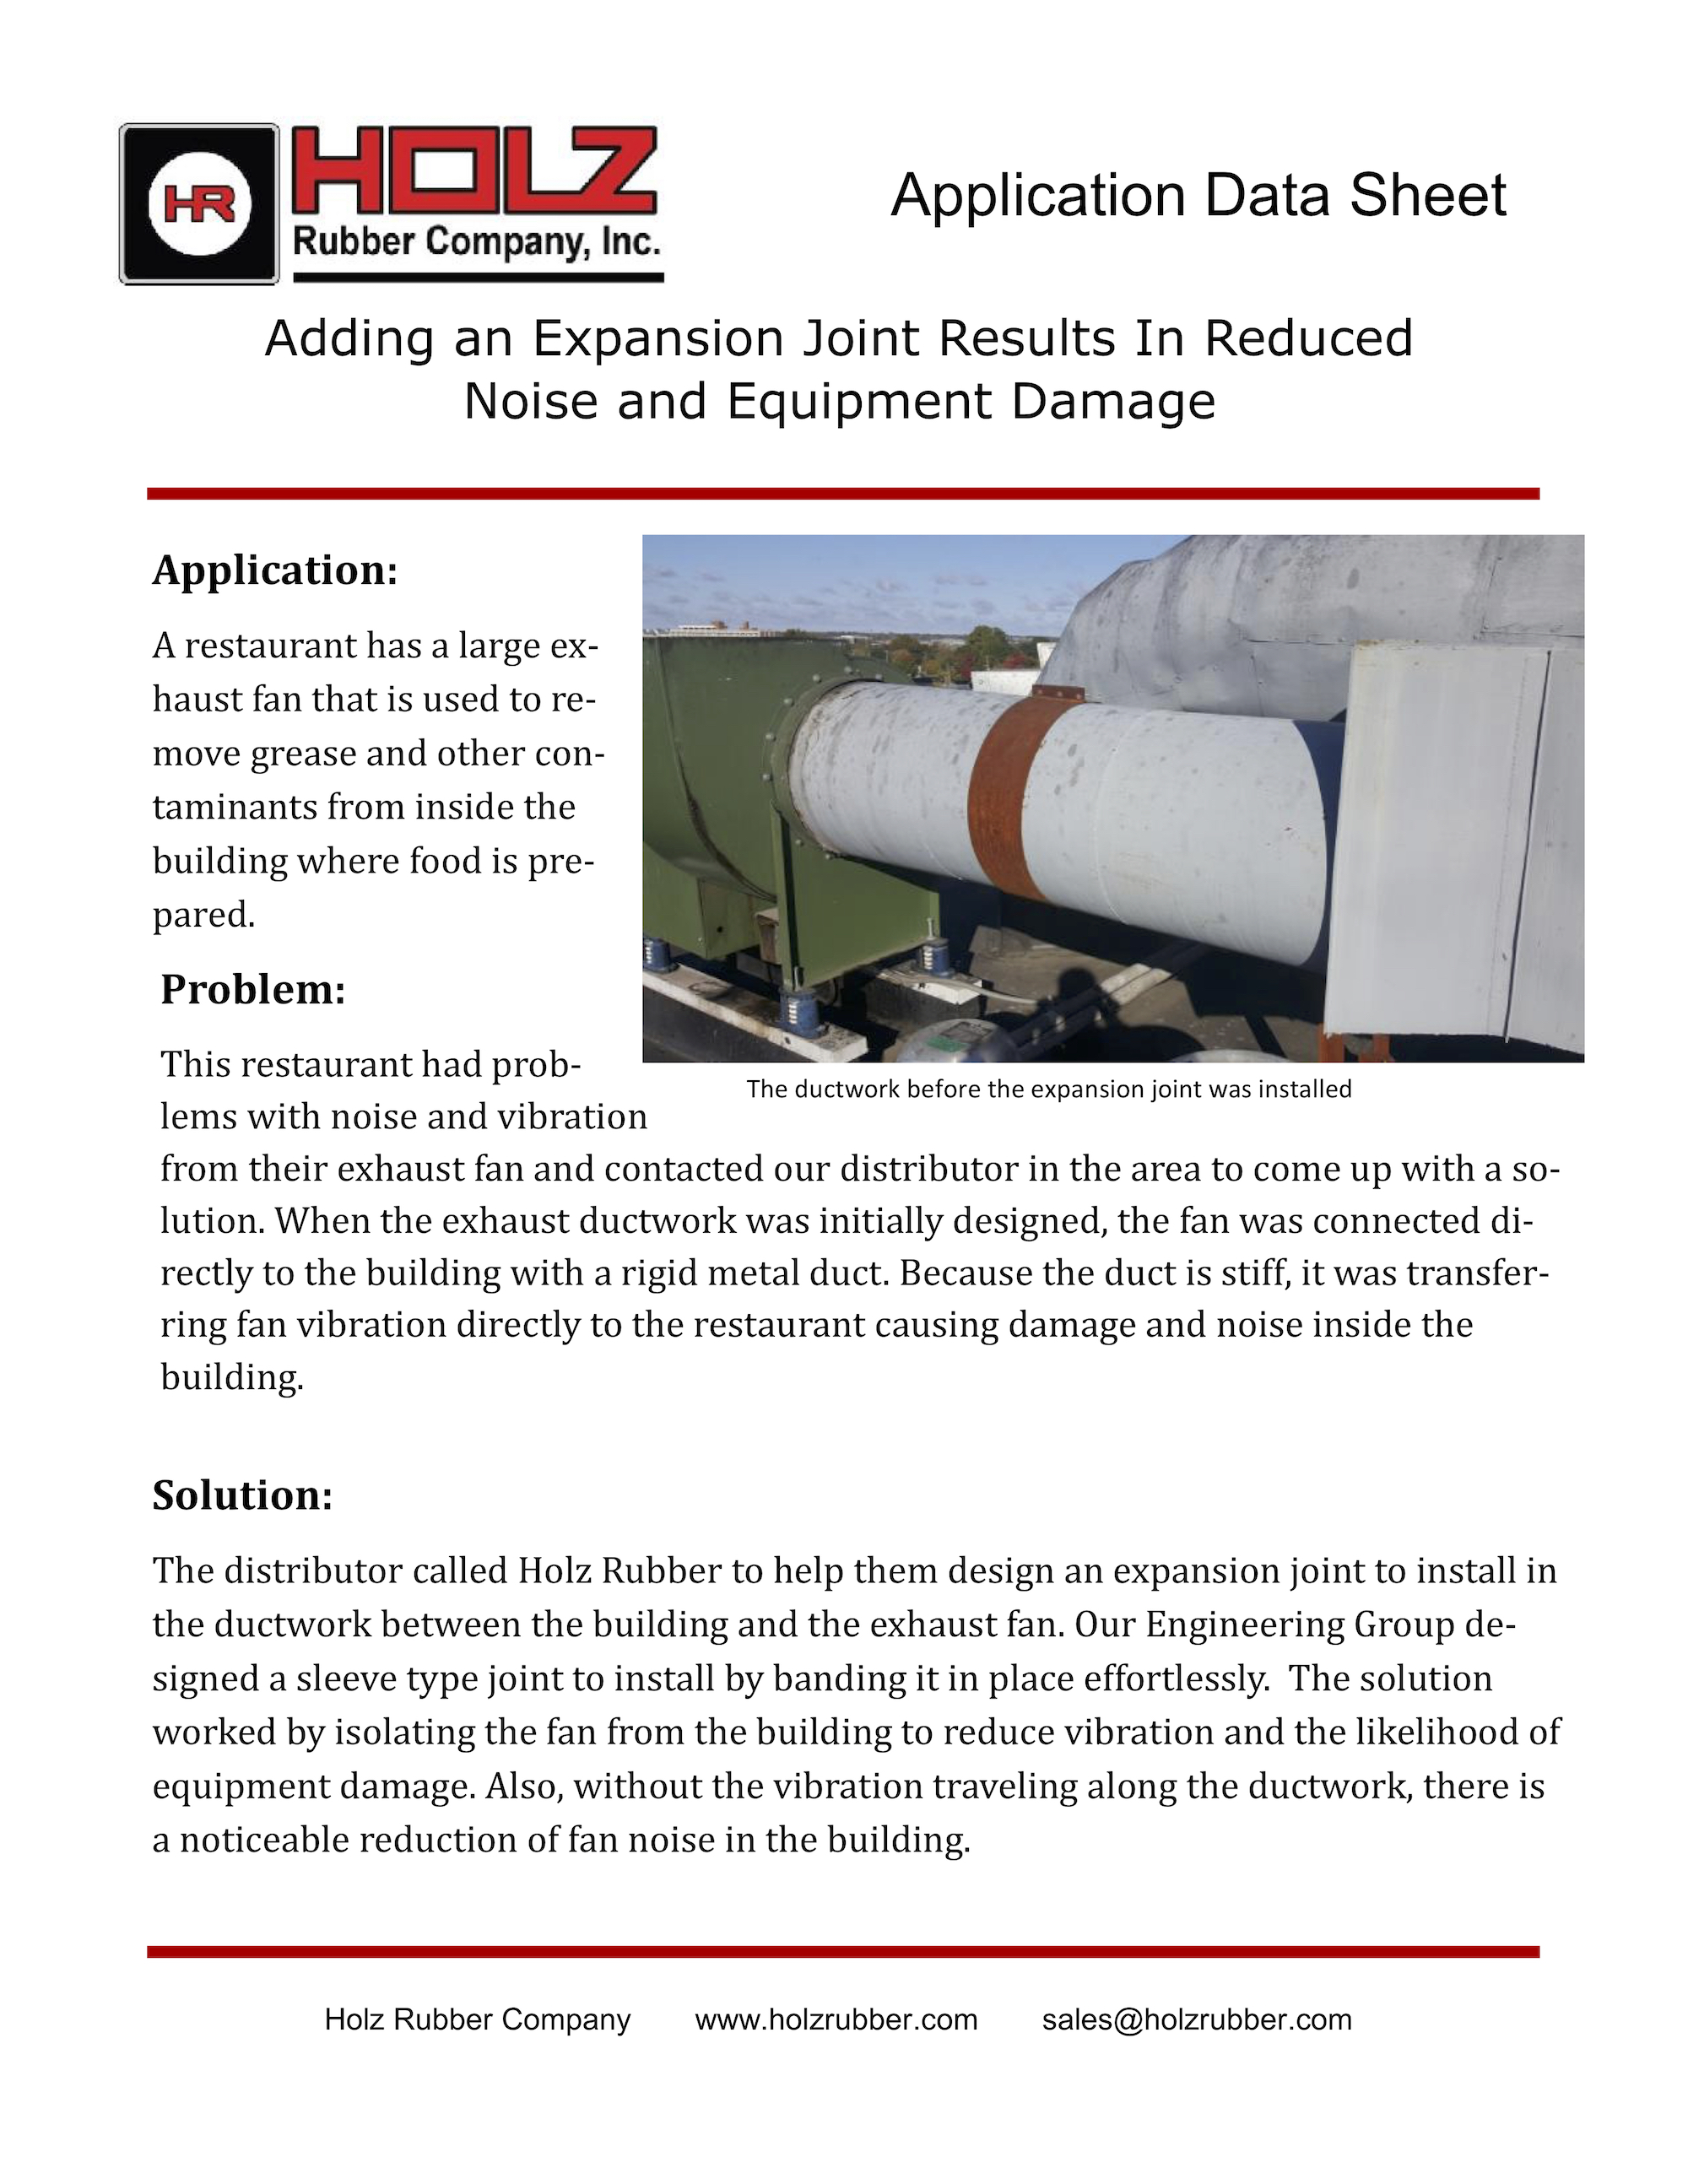 Failed Expansion Joints Cause Unplanned Outages At Ethanol Plant